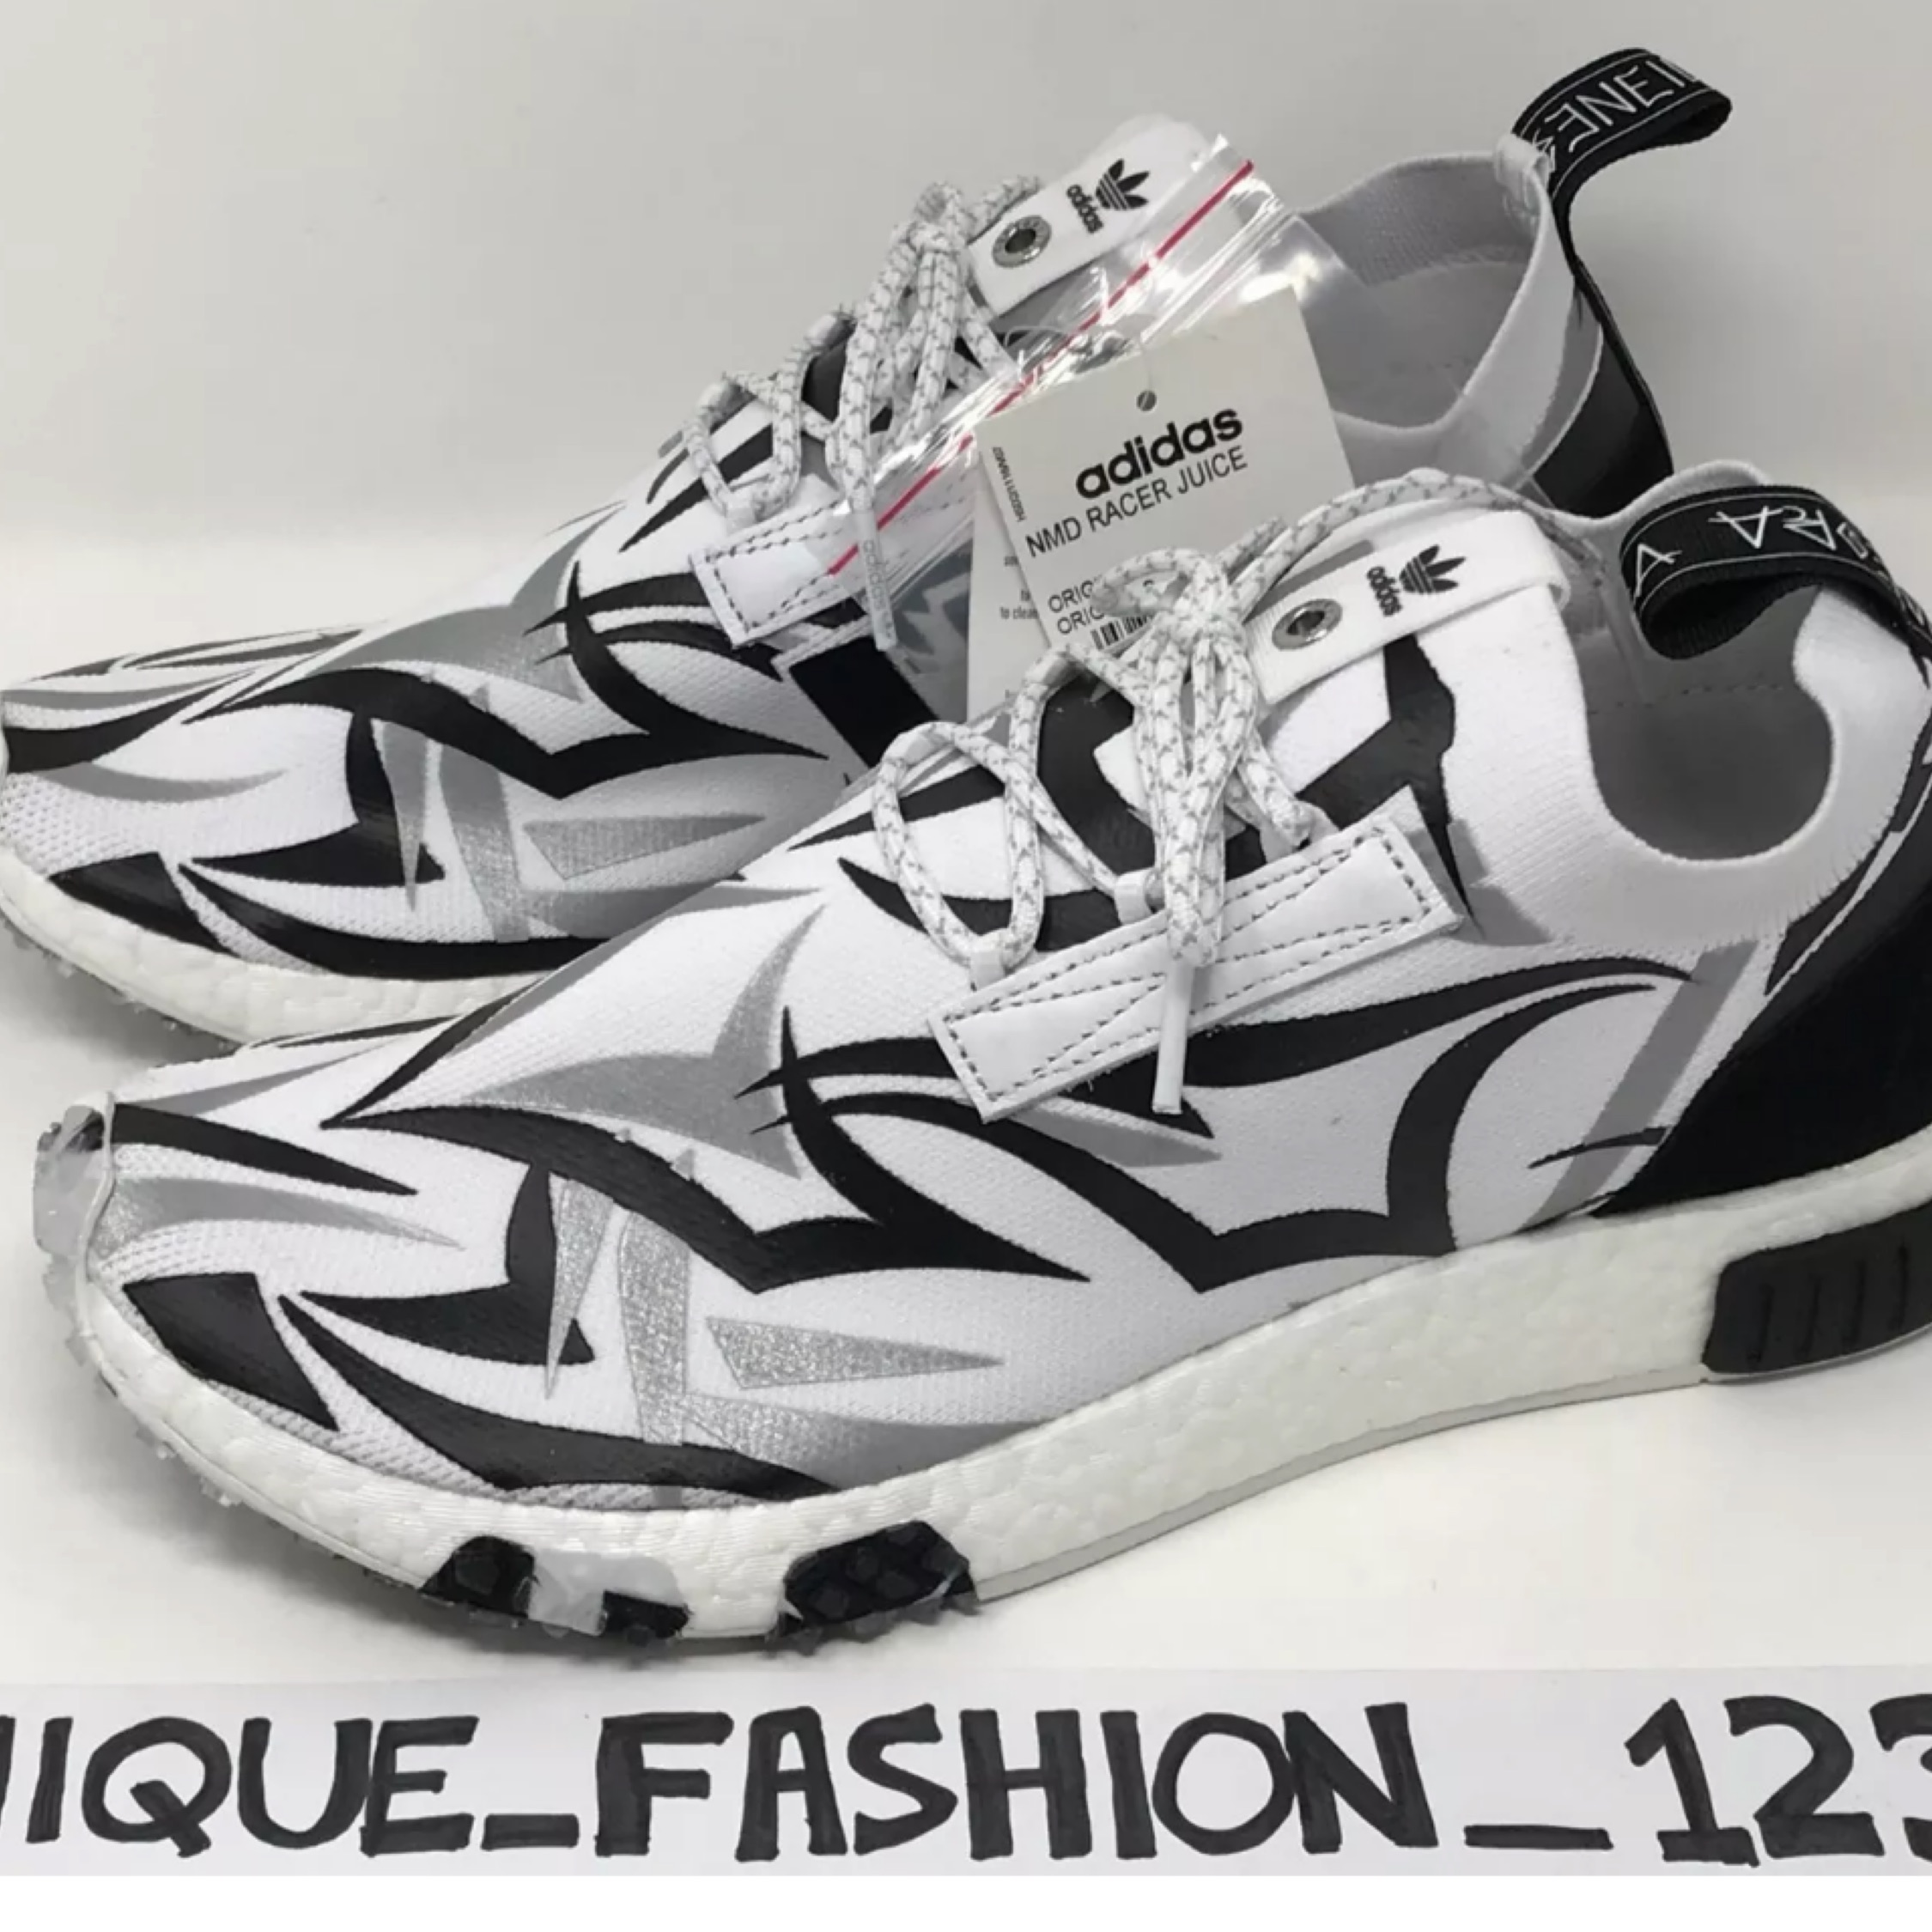 newest ee32a 3a18f Adidas Nmd Racer X Juice Consortium F+F